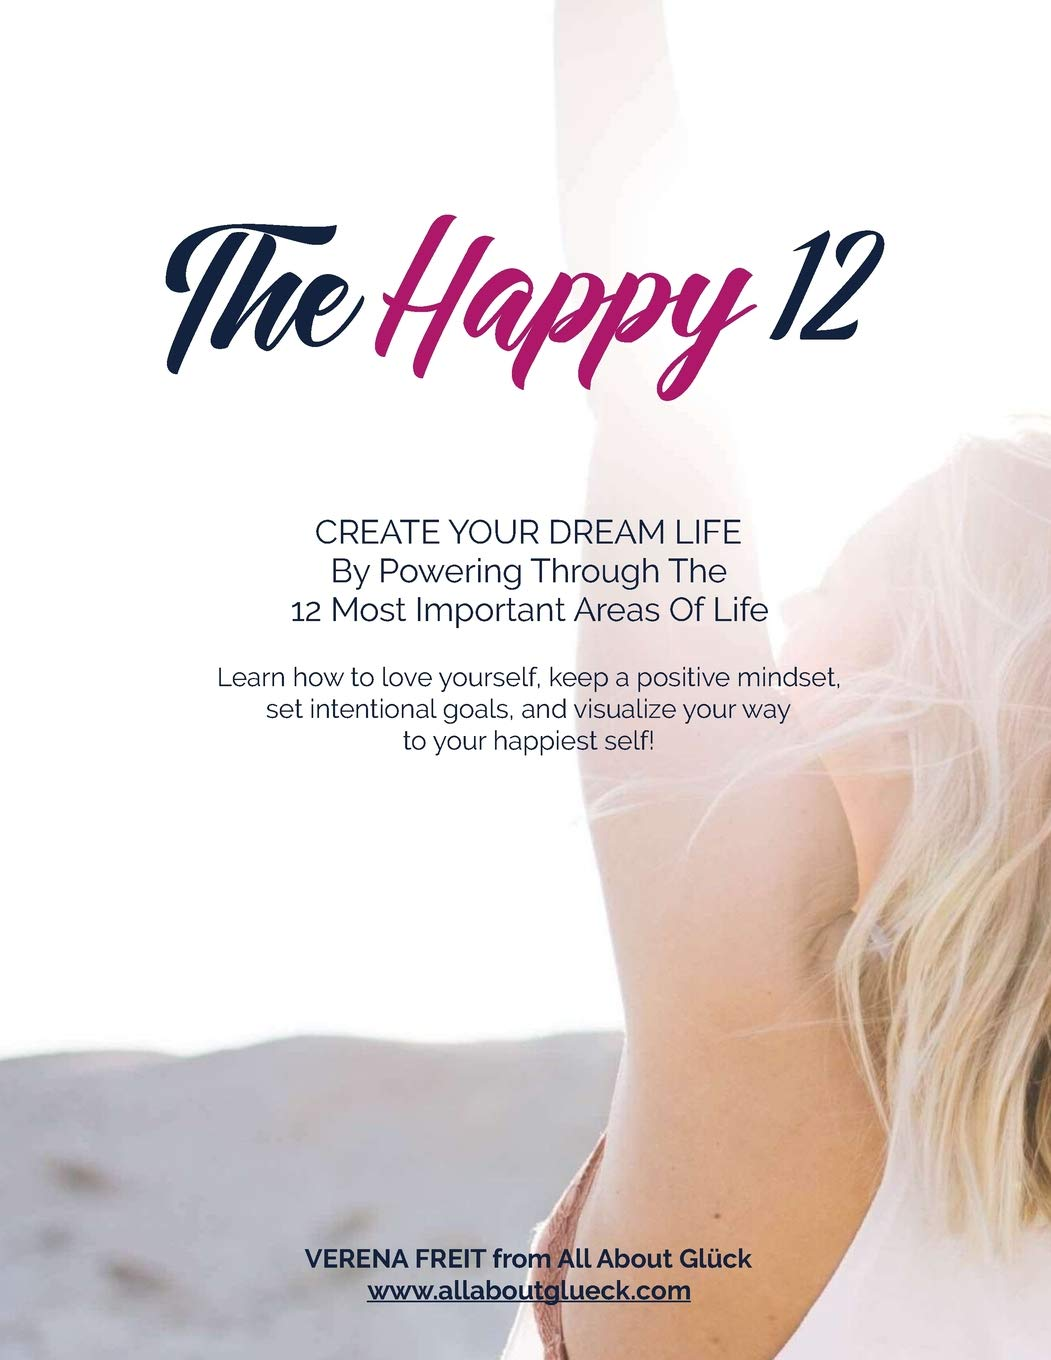 Download The Happy 12 - Creating Your Dream Life: A planner/workbook to create the life of your dreams. 12 months full of intention, goal setting, journaling, visualizing, self love and positivity! PDF